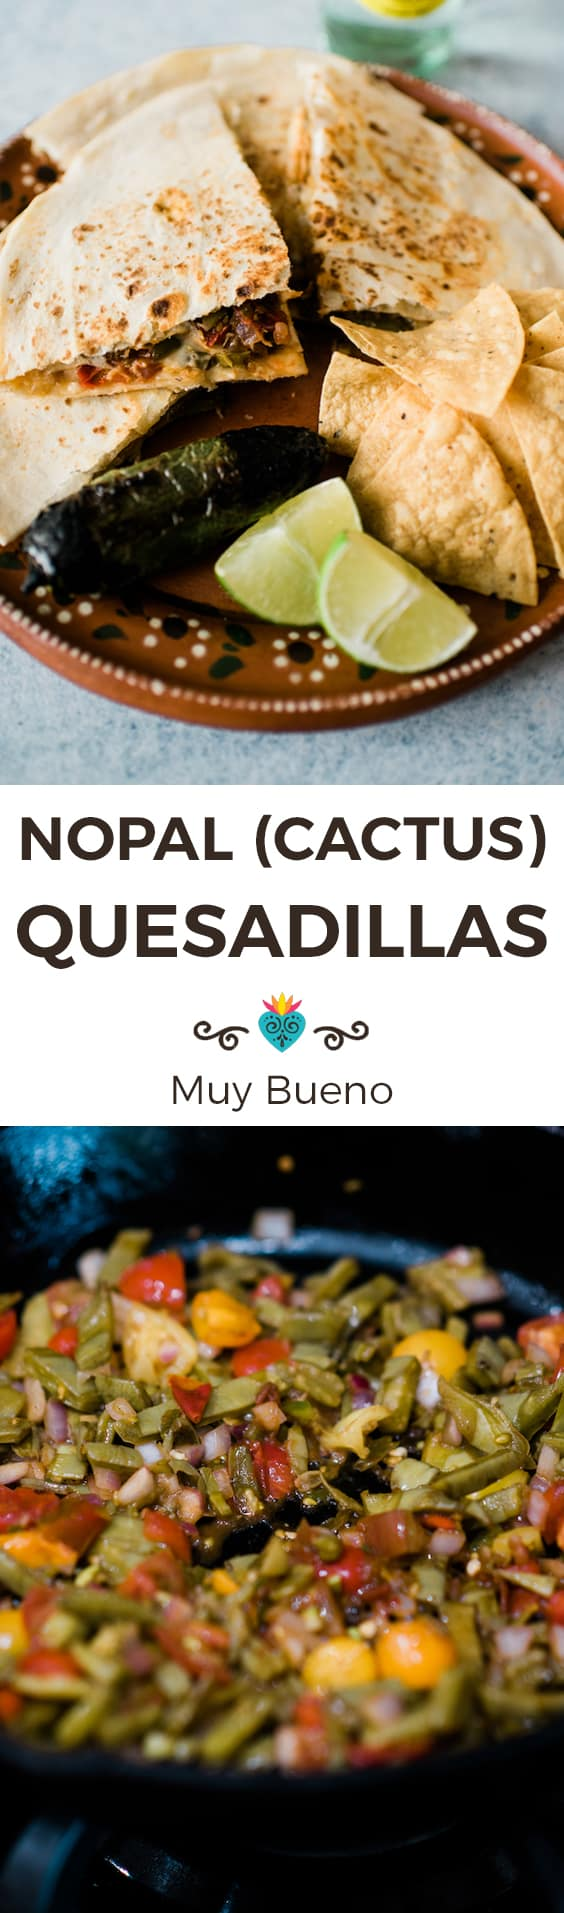 Cactus Nopal Quesadillas collage with text overlay